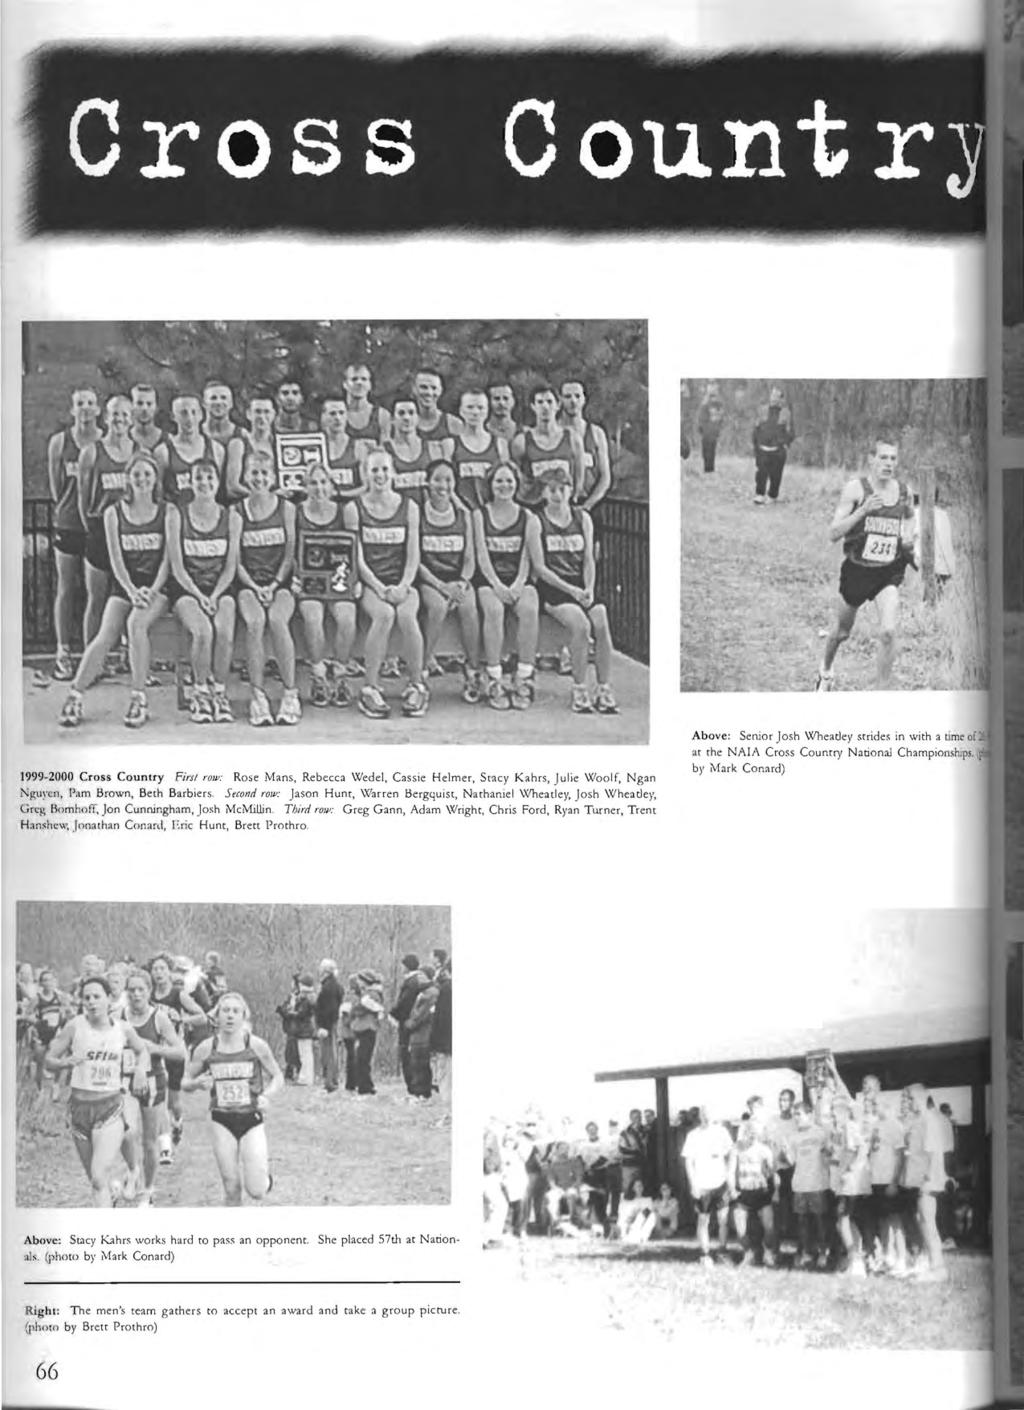 1999 2000 Cross Country Firs/ rolv: Rose Mans, Rebecca Wedel, Cassie Helmer, Stacy Kahrs, Julie Woolf, Ngan Nguyen, Pam Brown, Beth Barbiers, Second rov: Jason Hunt, \Varren Bergquist, Nathaniel